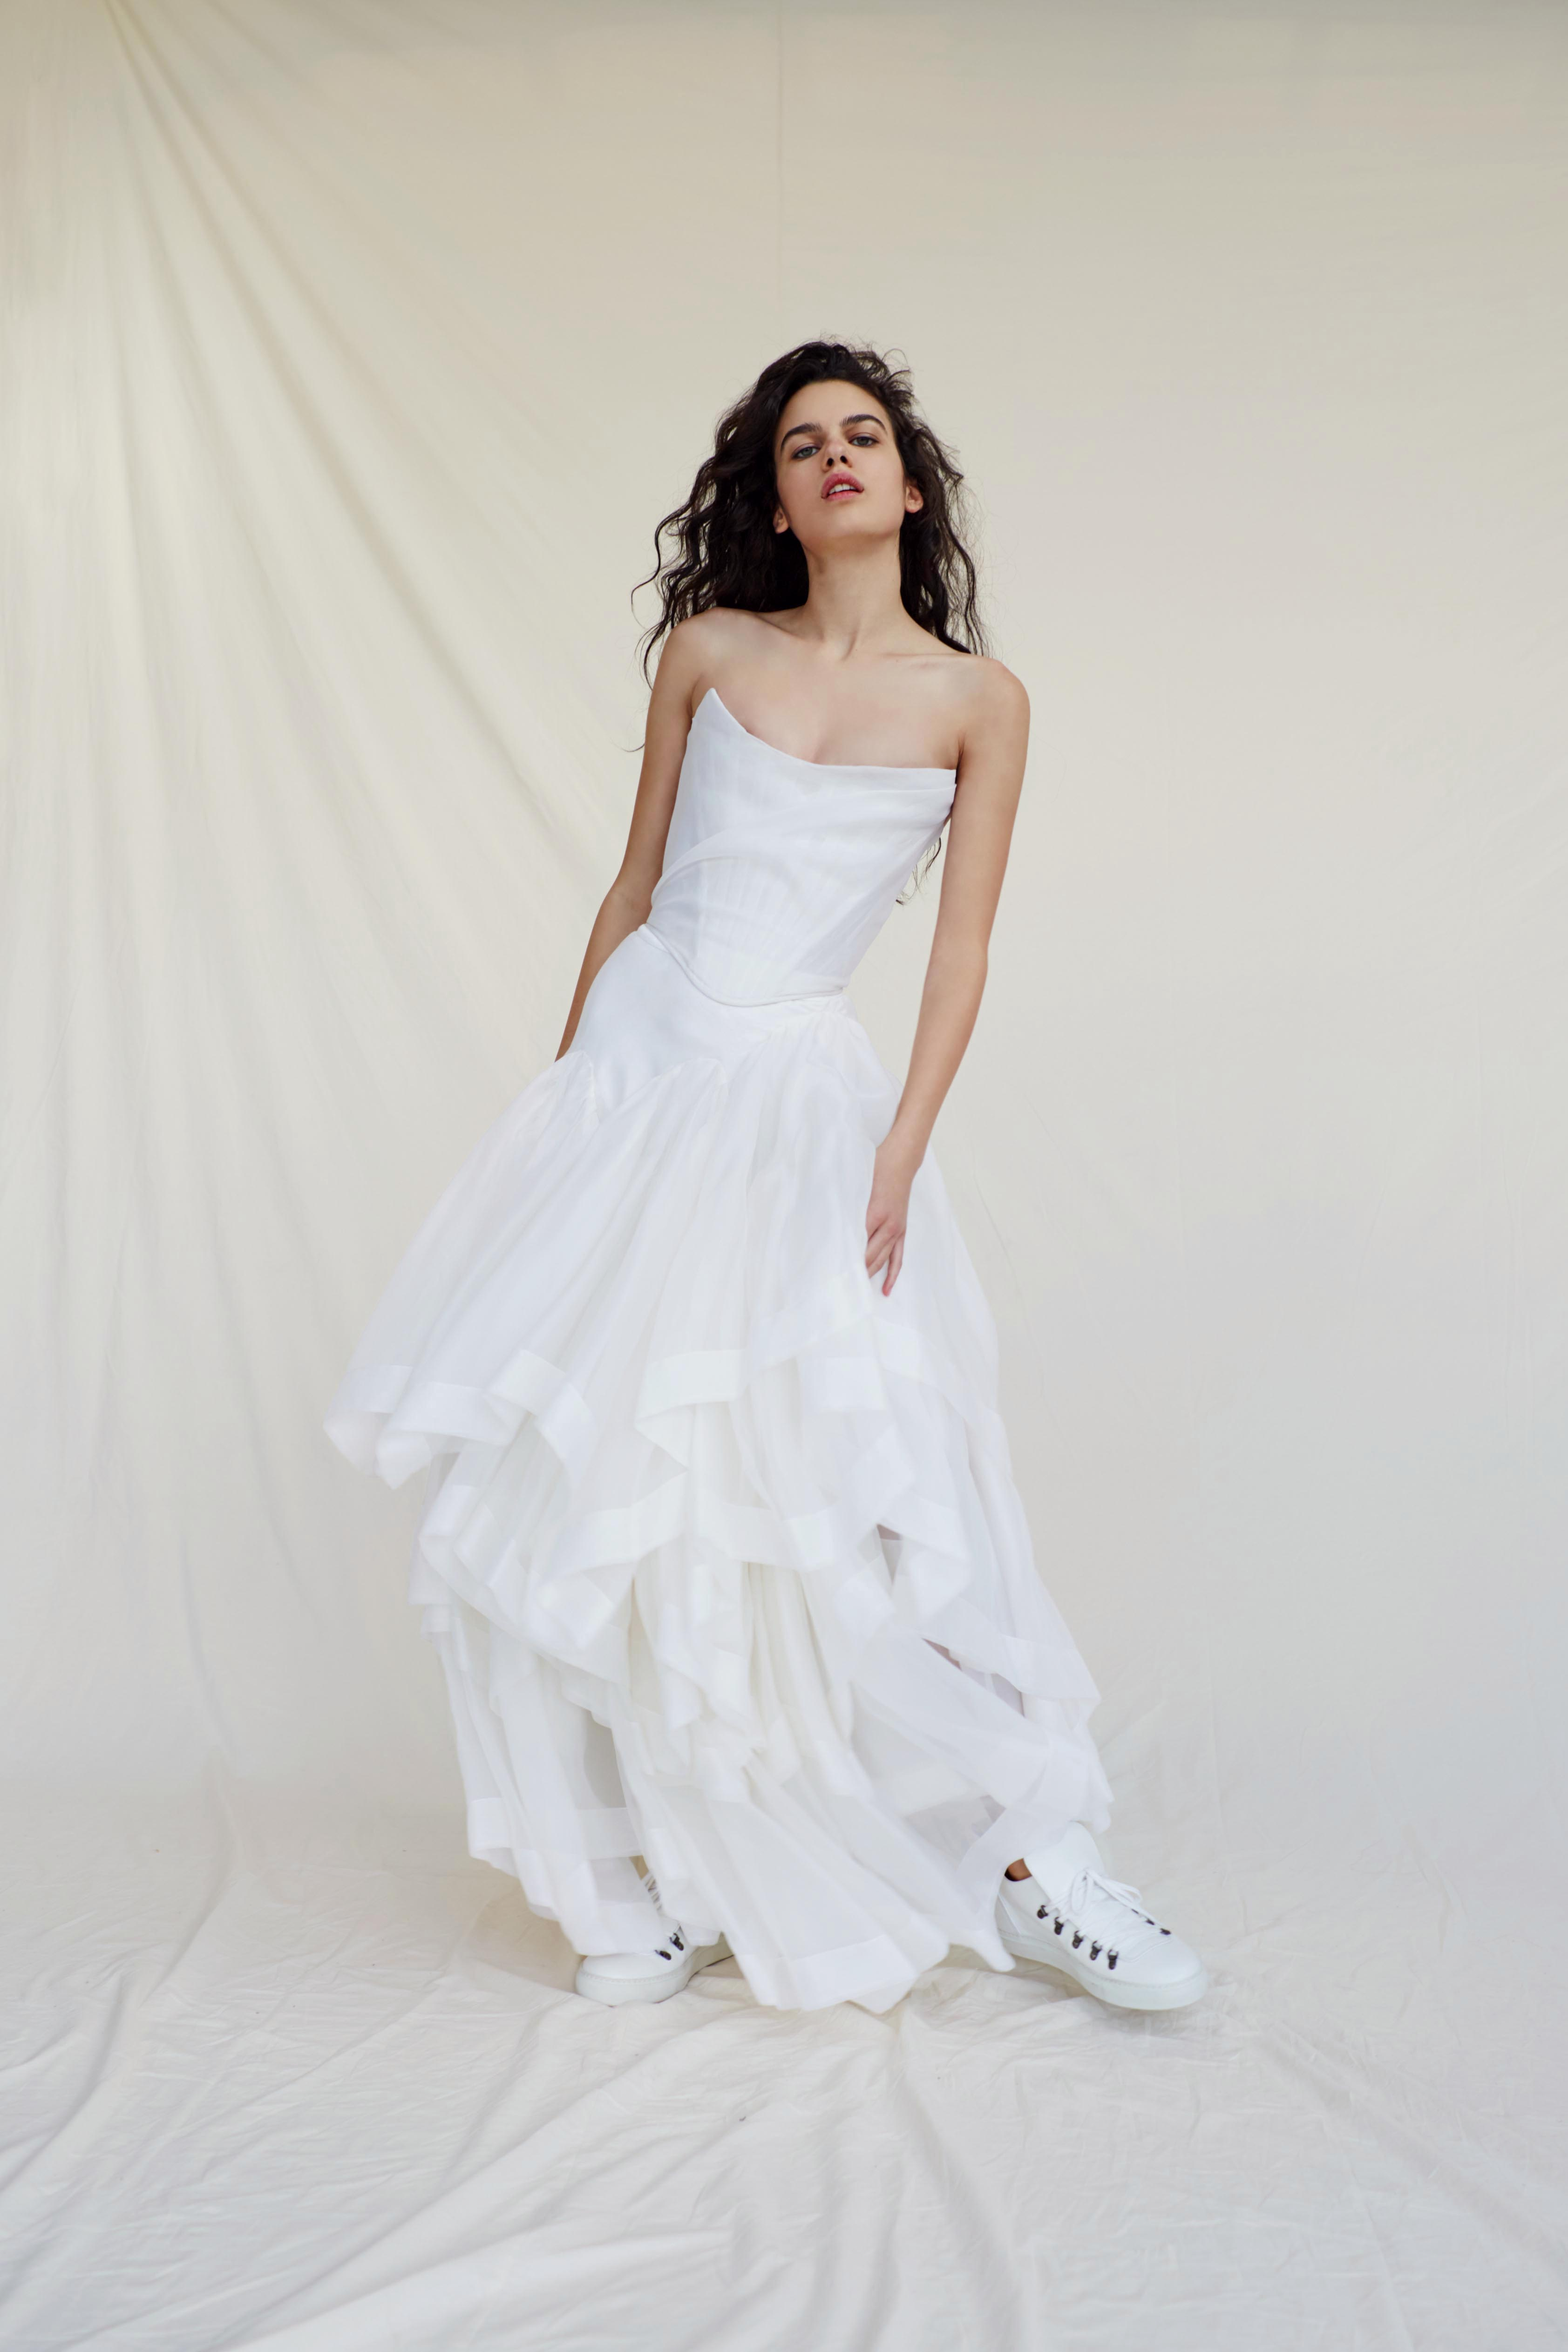 vivienne westwood wedding dress Spring 2019 strapless corset top a-line